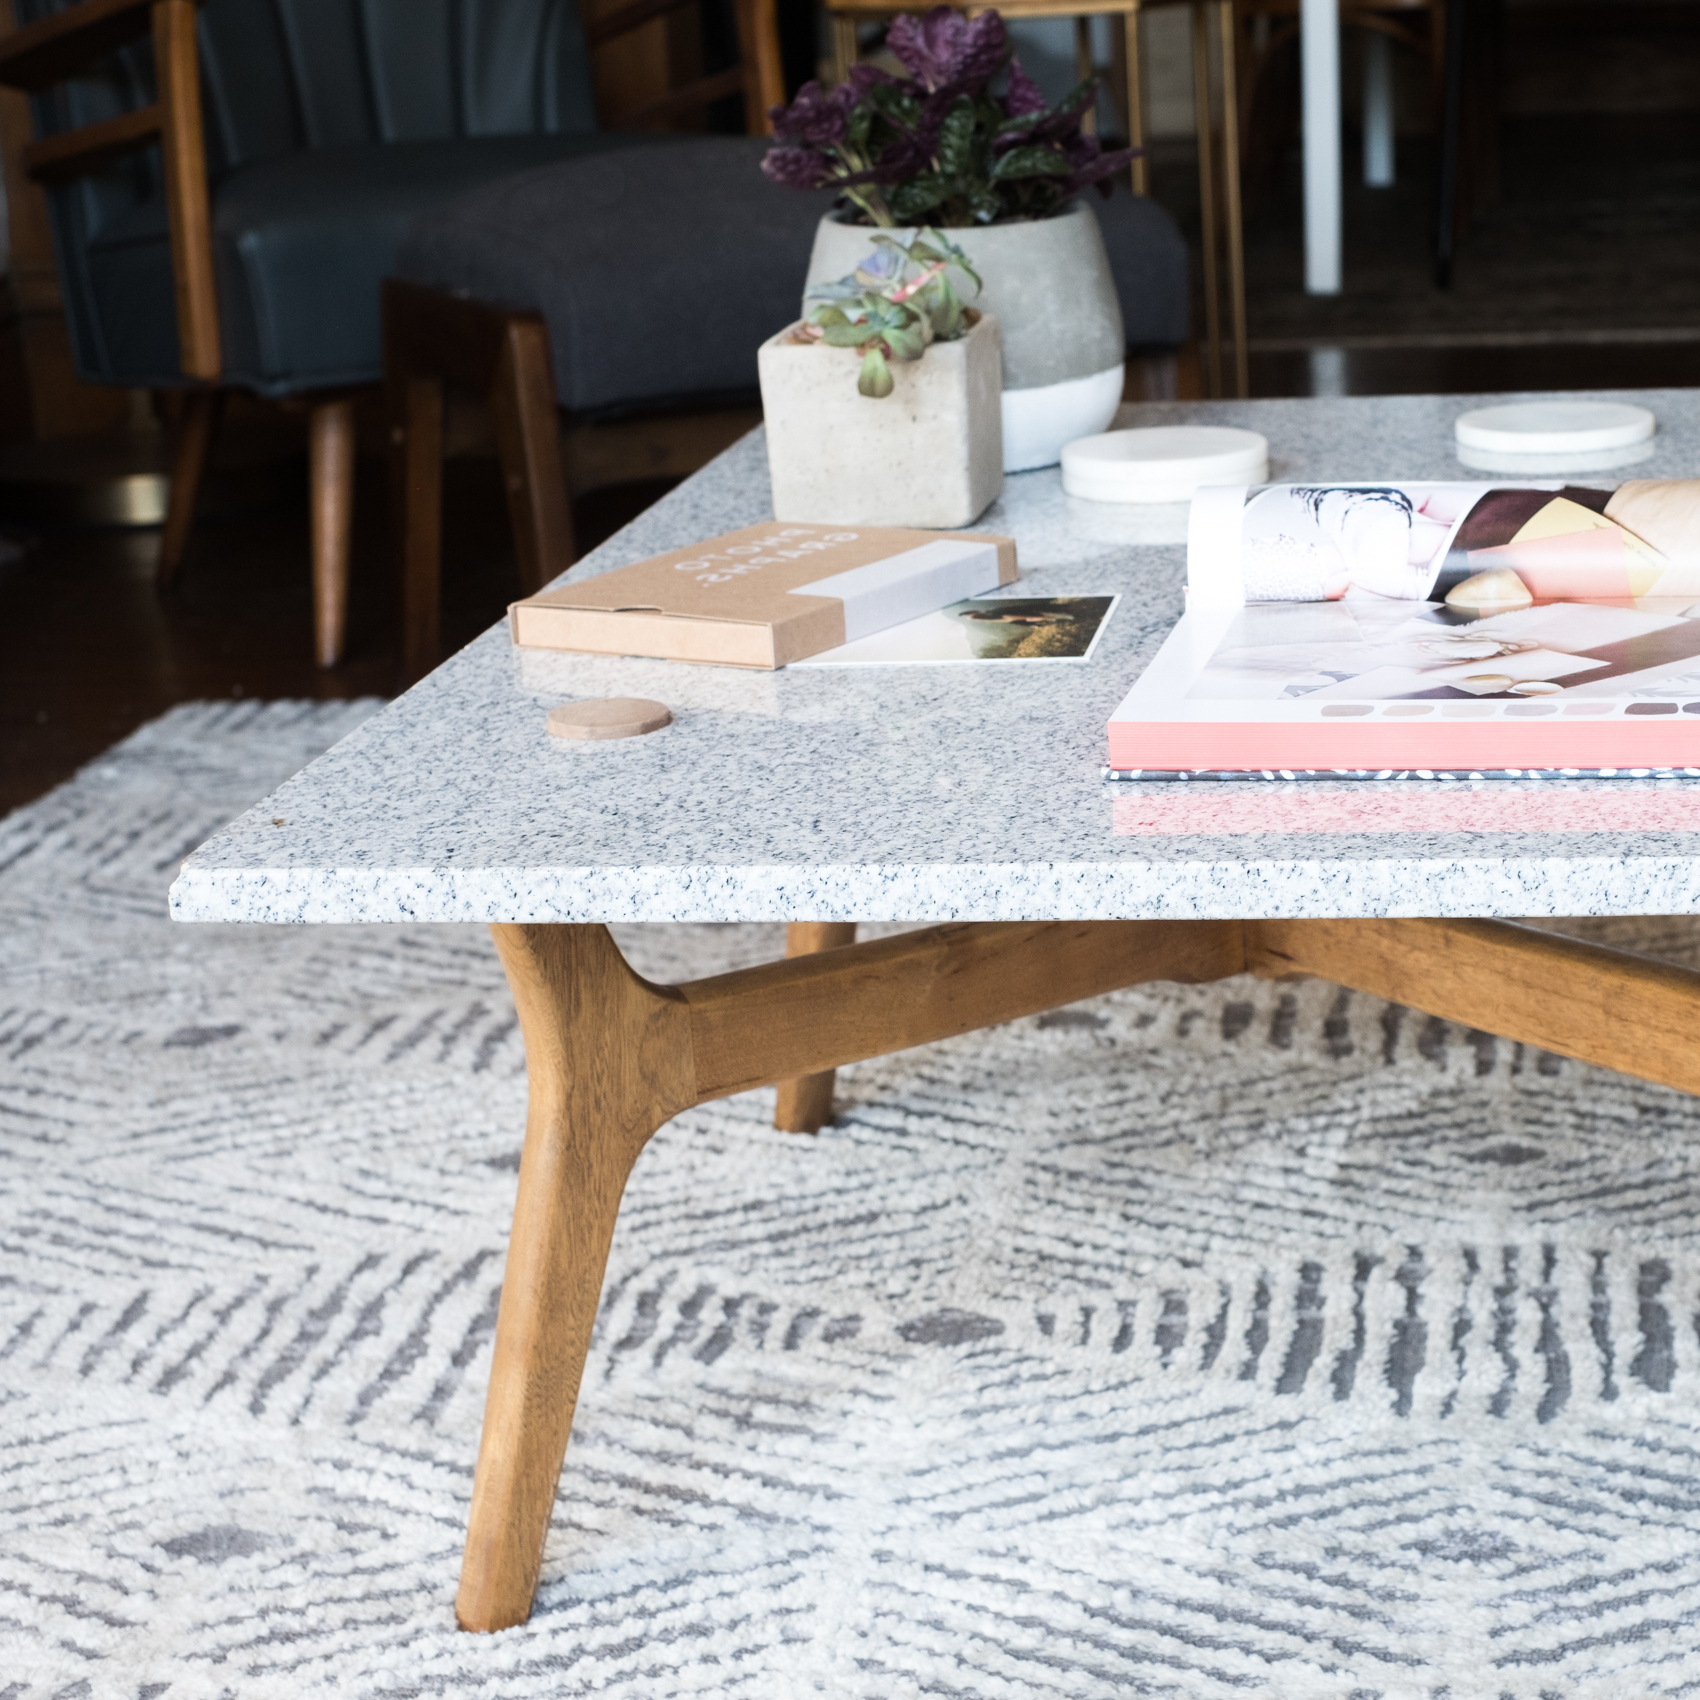 Well Liked Diy Stone Top Coffee Table – Design*sponge Intended For Stone Top Coffee Tables (View 20 of 20)